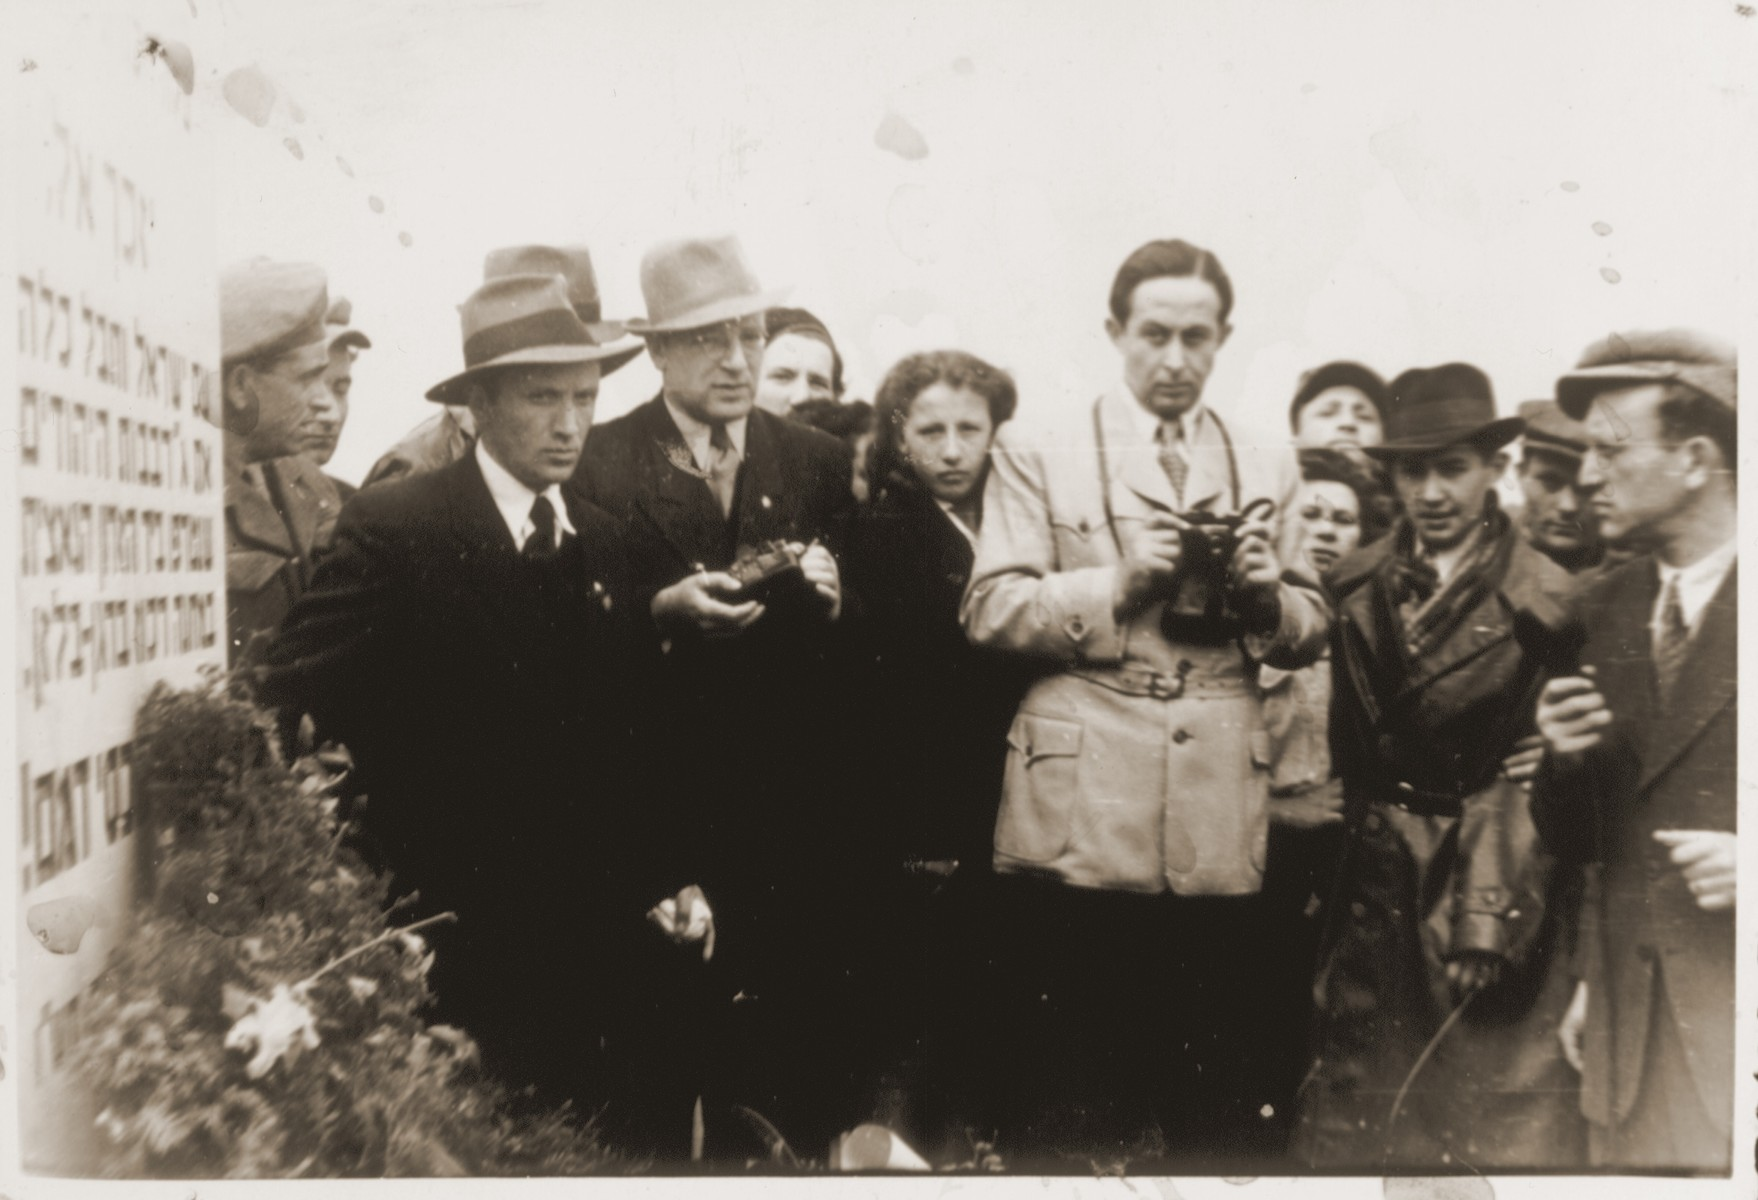 A group of Jewish DPs stand near the memorial at the Bergen-Belsen concentration camp.    Among those pictured are Roniek Zyngier (right) and Lolek Rosenblatt (center, with a camera slung around his neck).